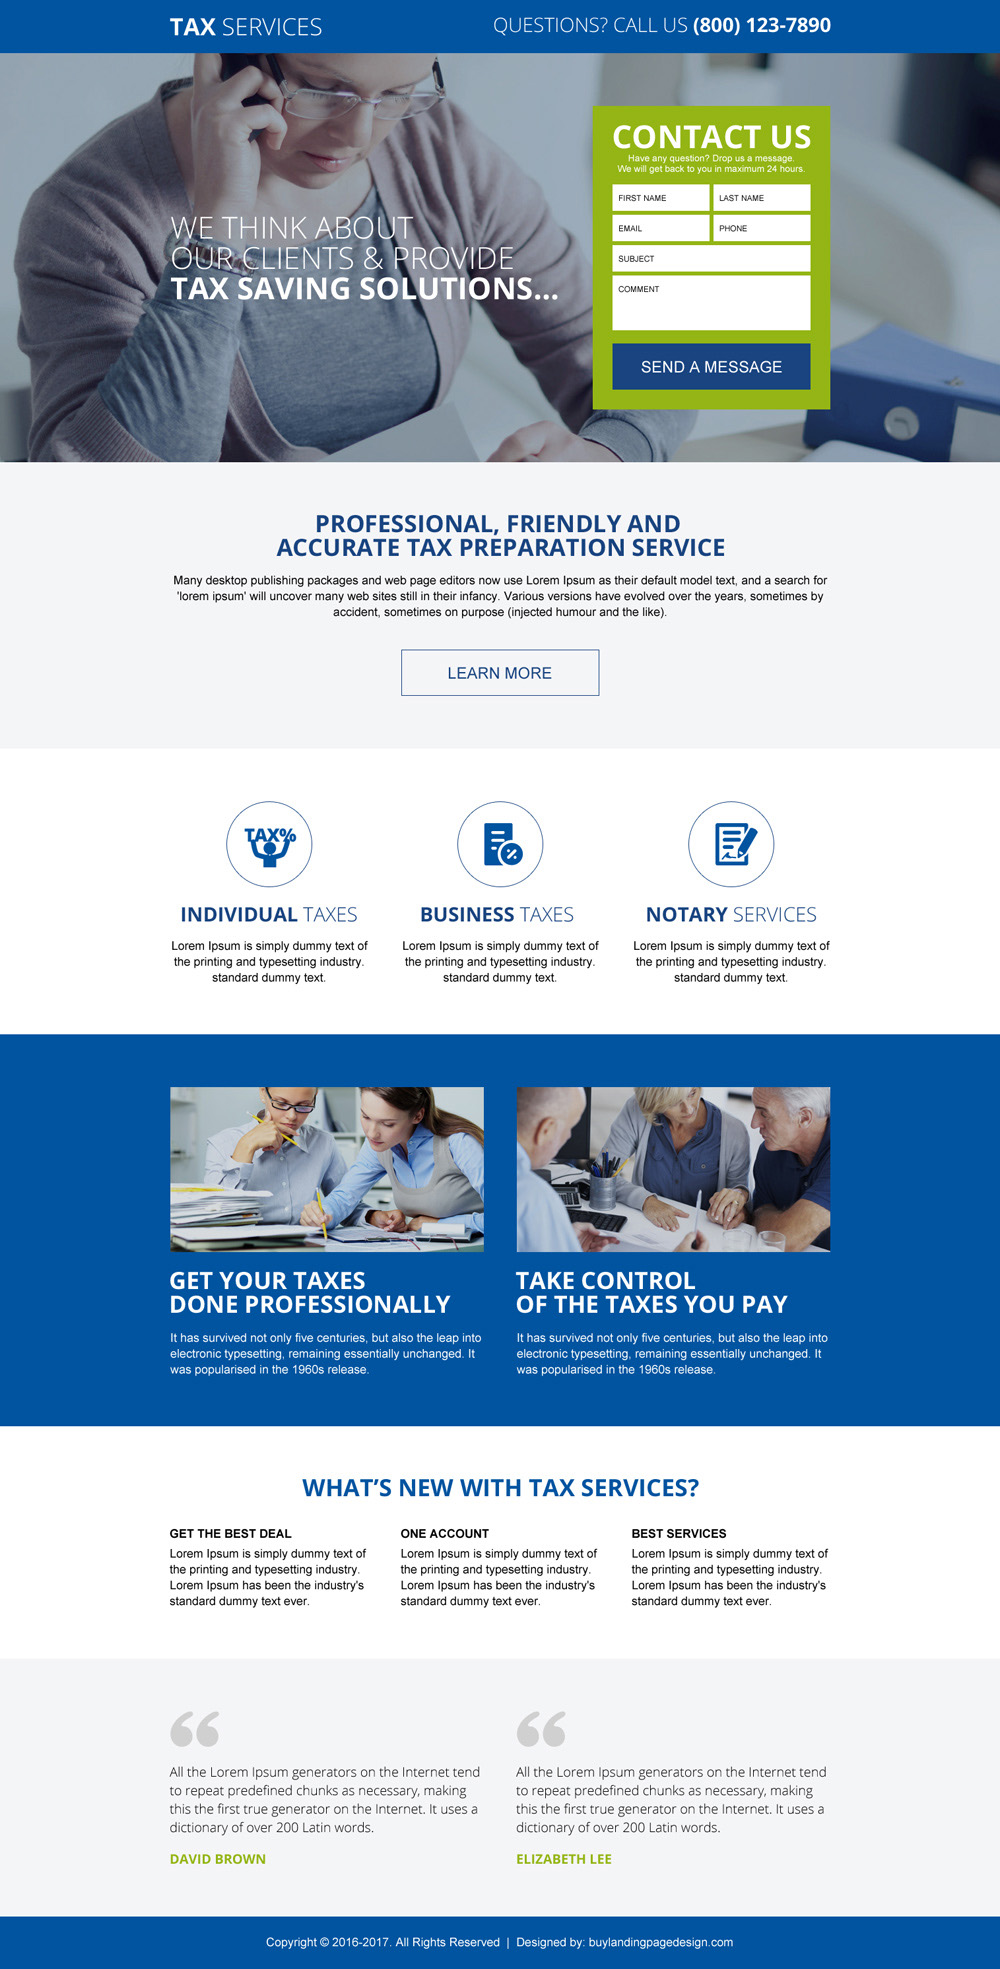 tax-saving-service-and-solution-lead-generation-landing-page-design-005